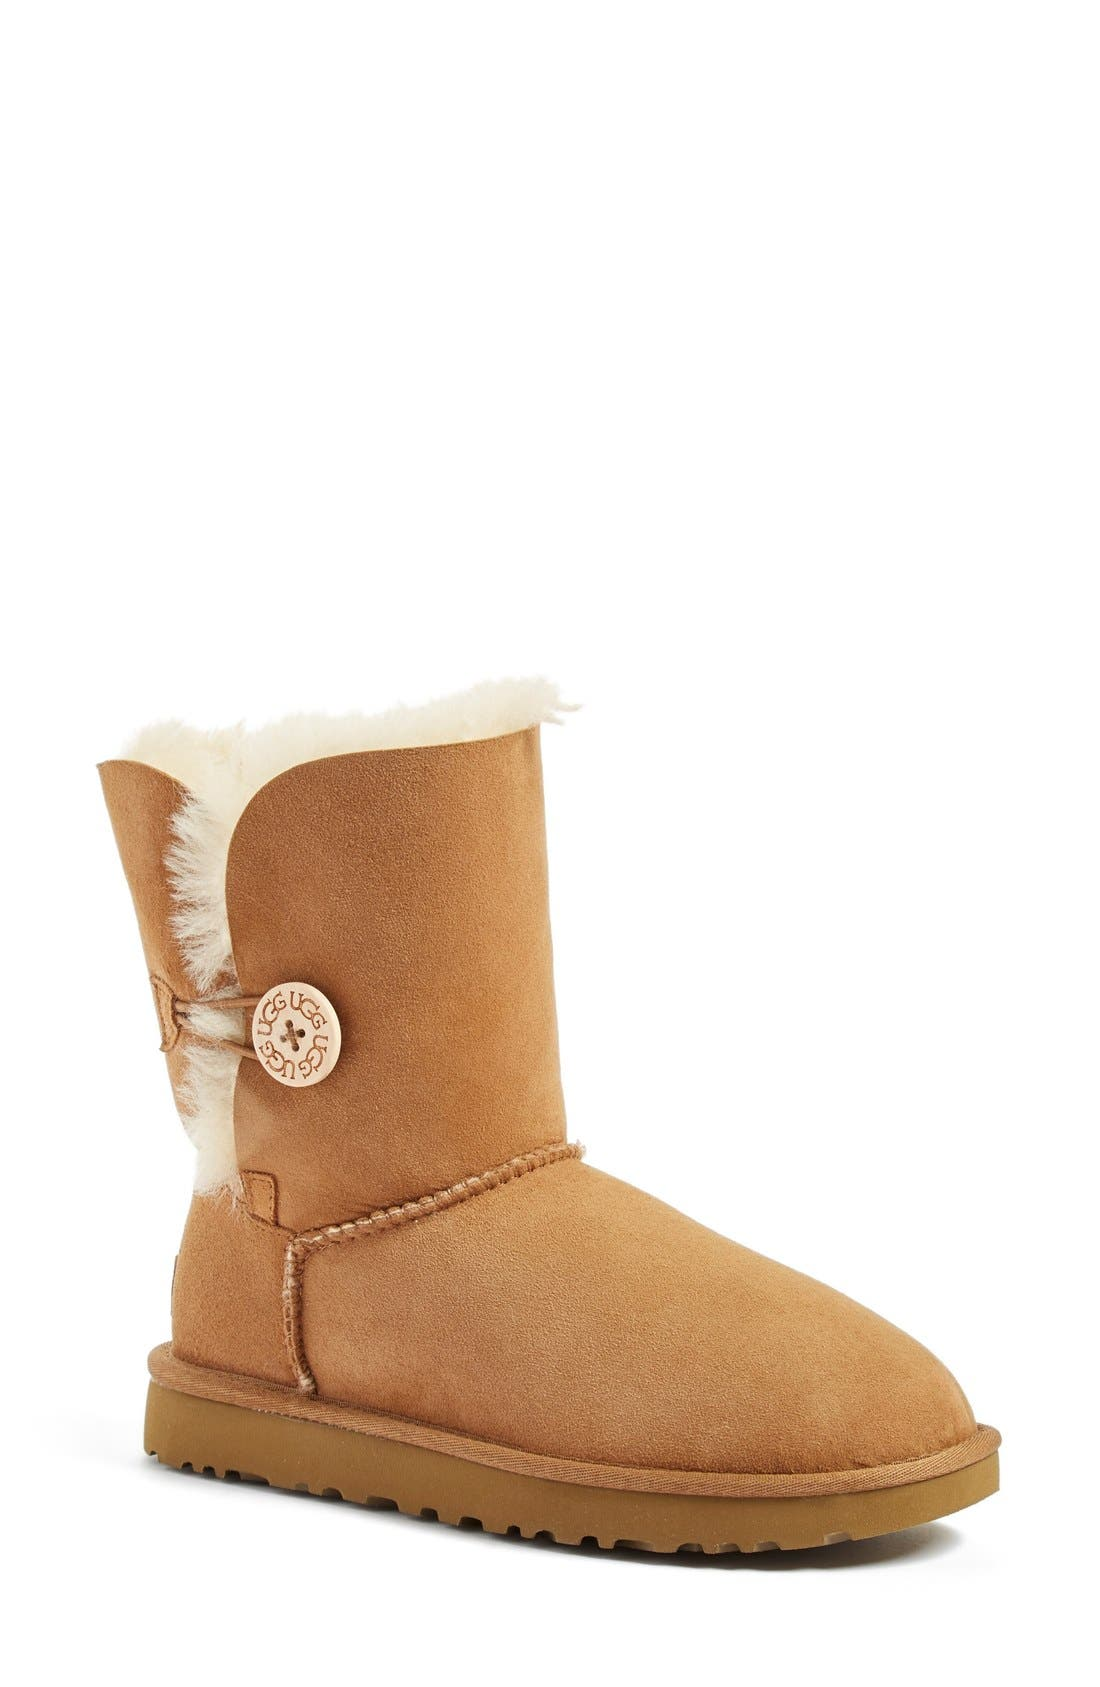 Bailey Button II Boot,                             Main thumbnail 1, color,                             CHESTNUT SUEDE